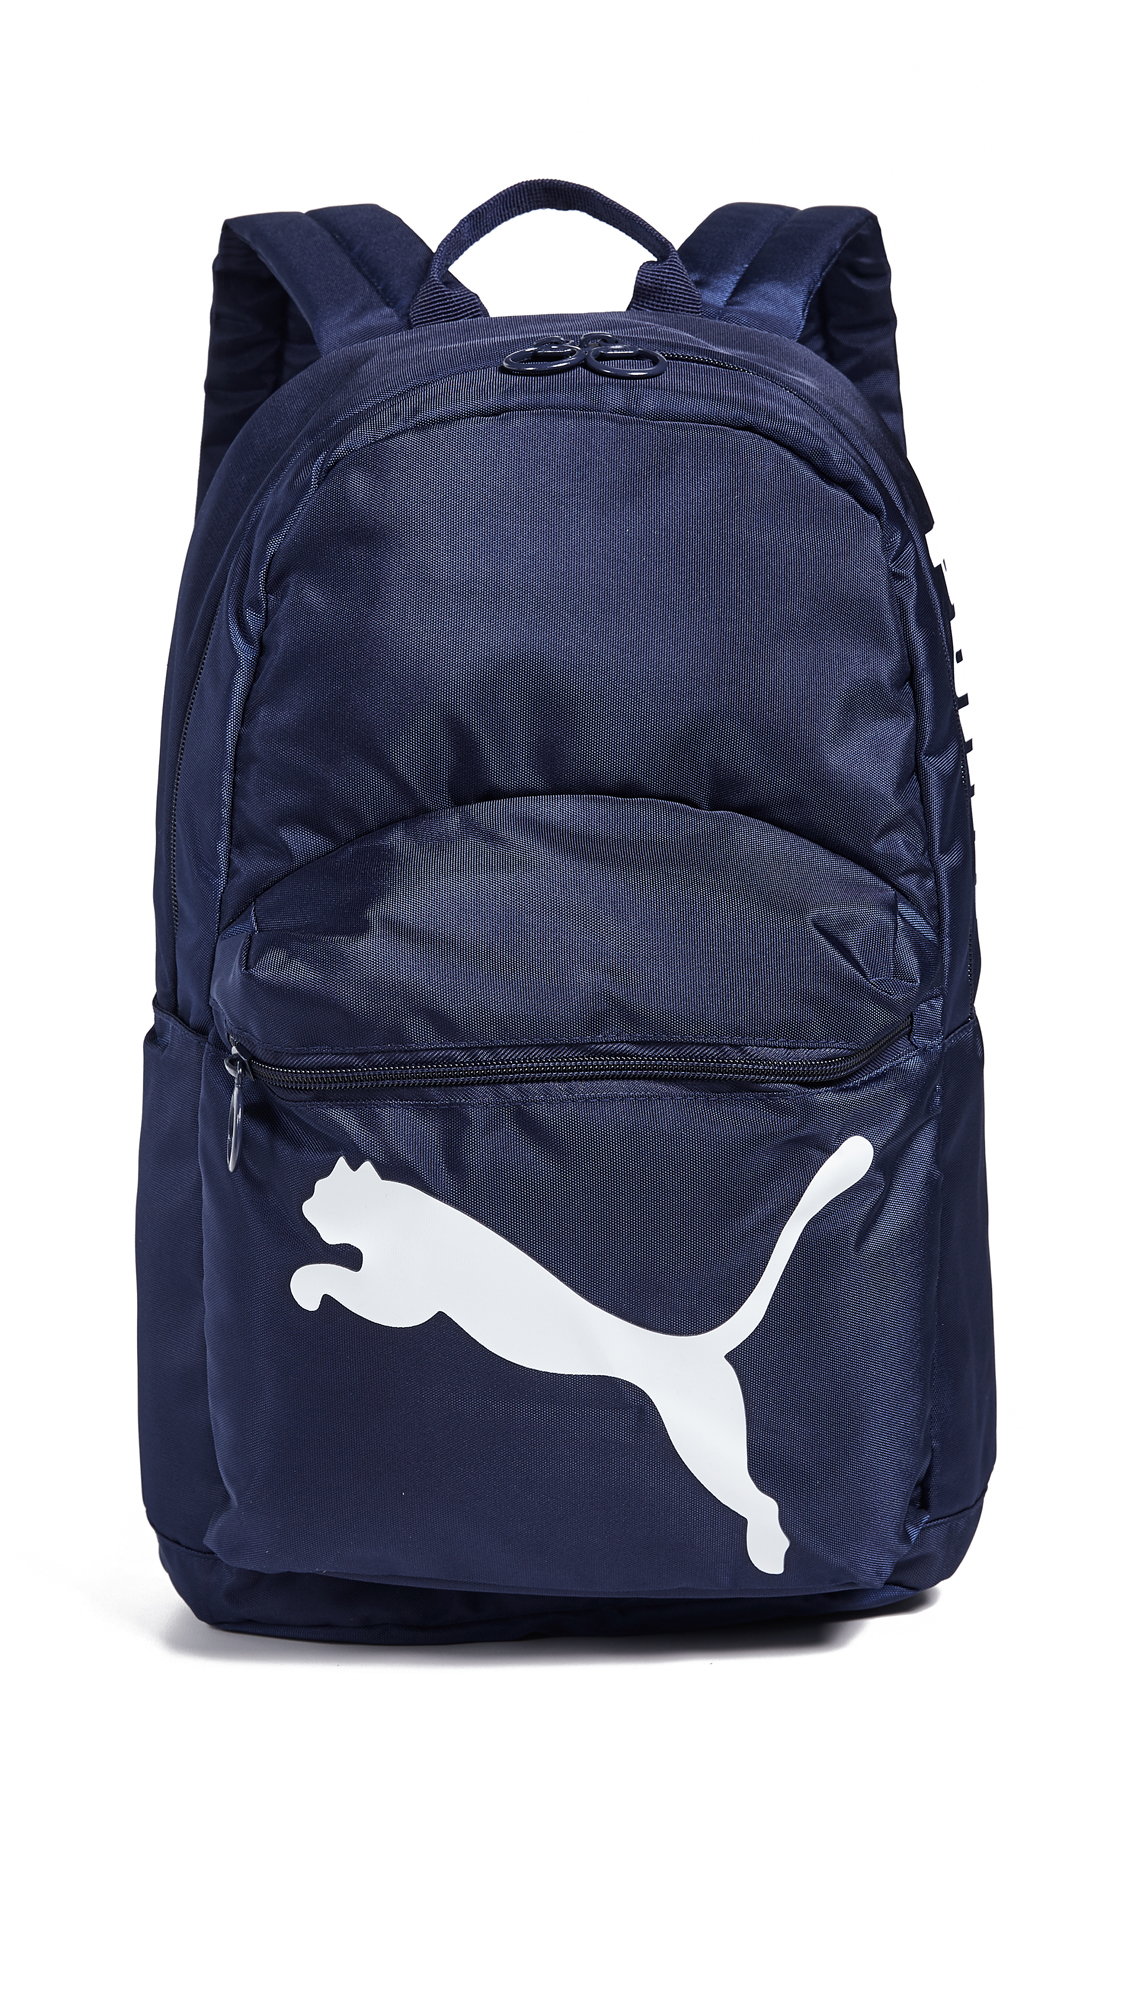 ESSENTIAL BACKPACK from Shopbop